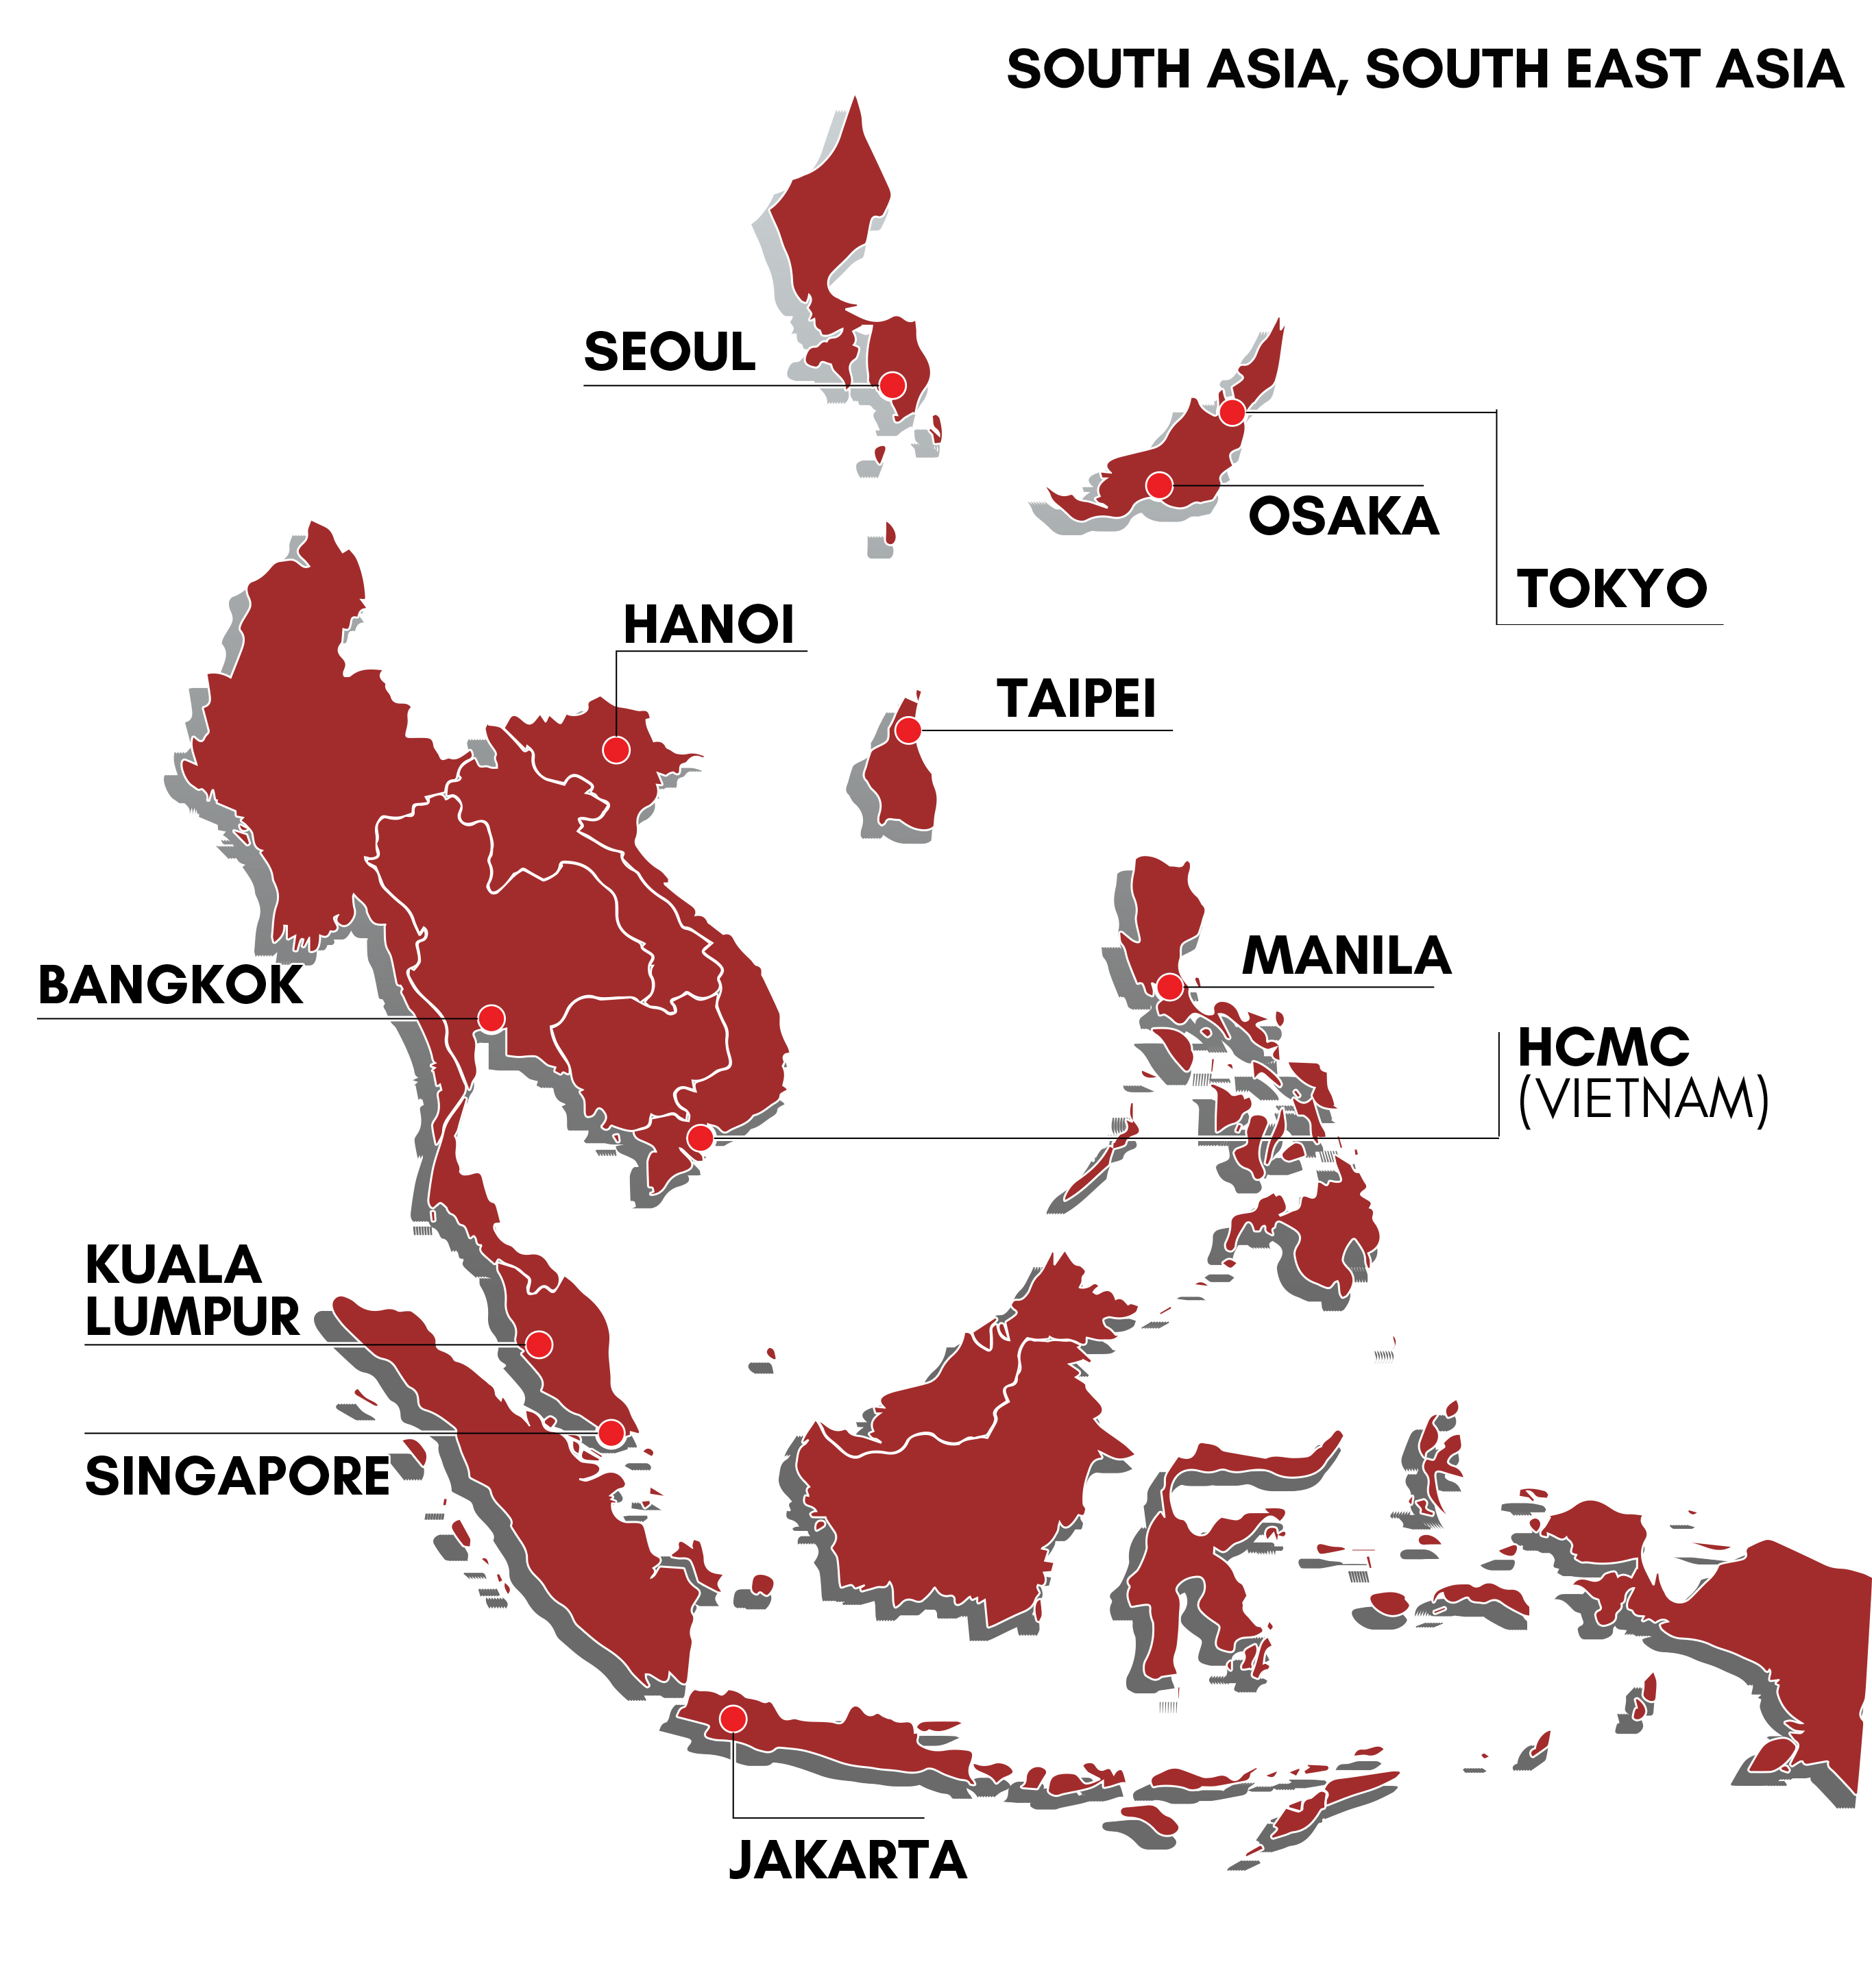 south-asia-south-east-asia-map